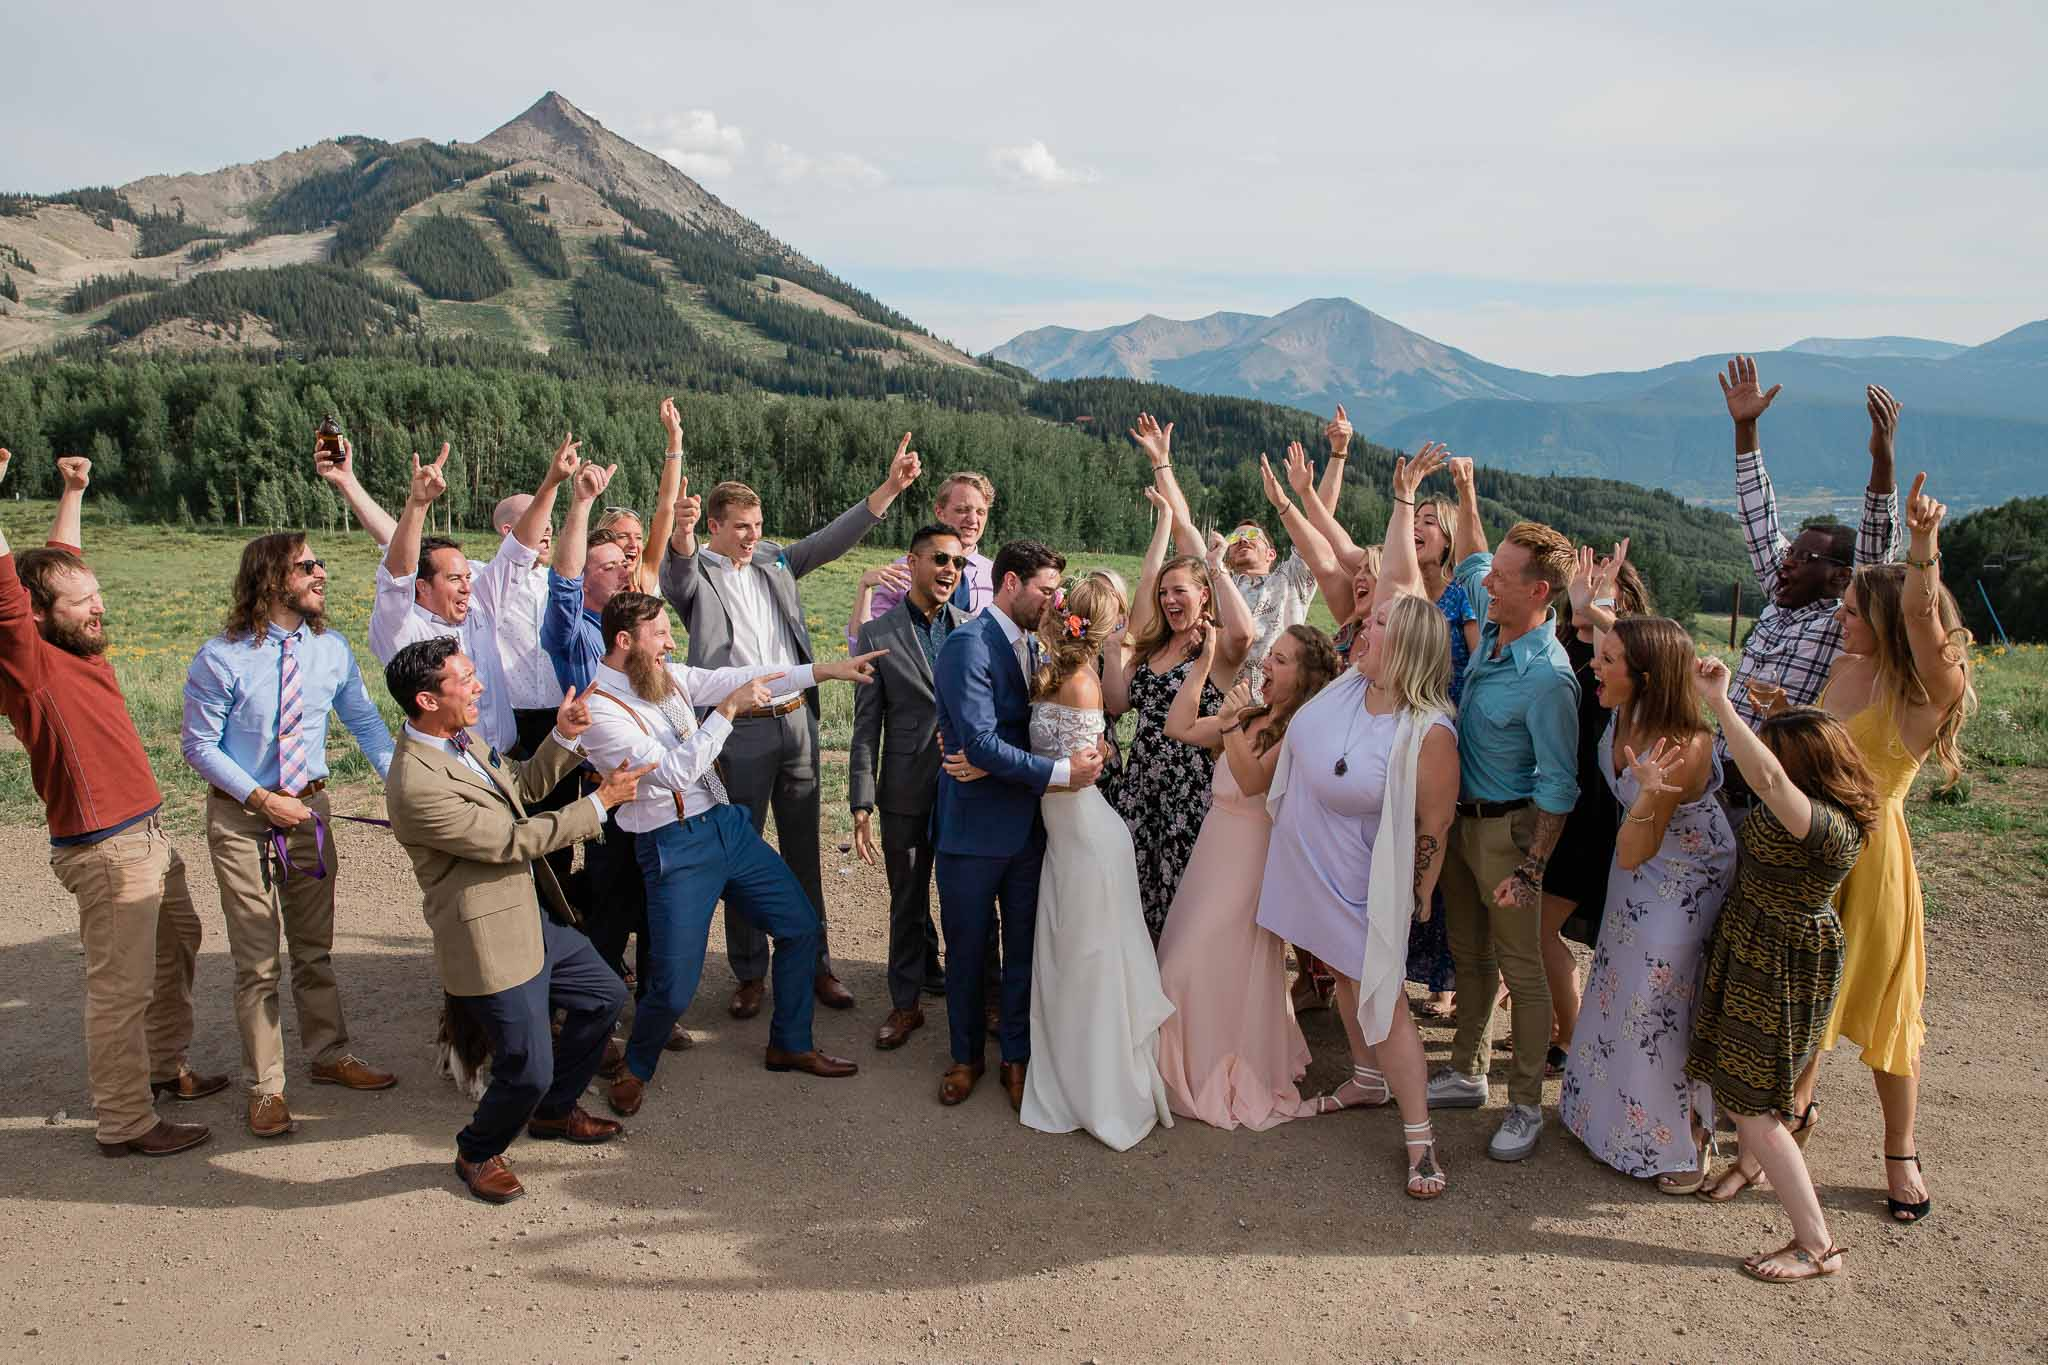 Friends and family cheer while bride and groom kiss in front of Ten Peaks view in Crested Butte Colorado